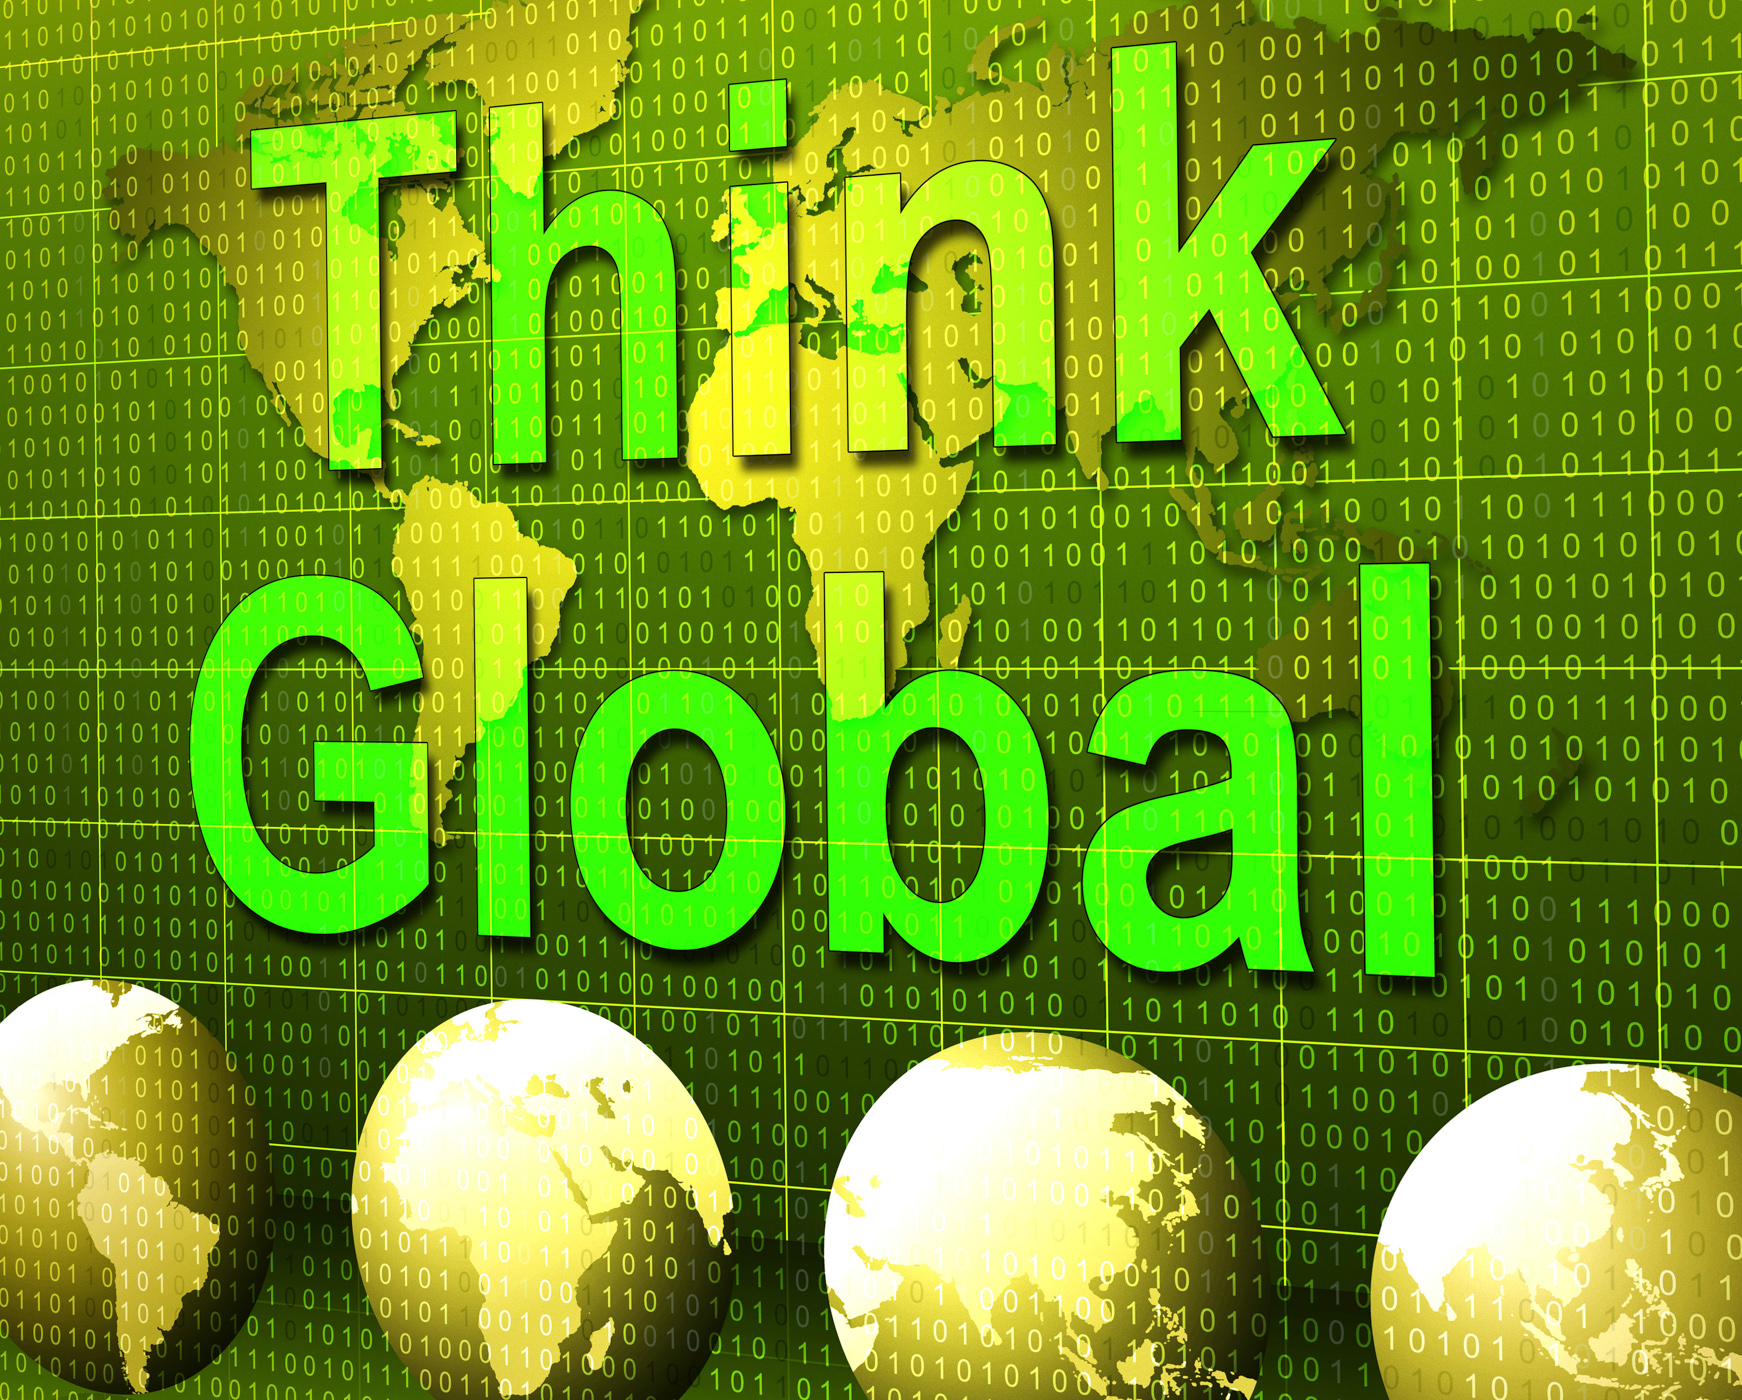 Think global represents contemplation planet and consider photo